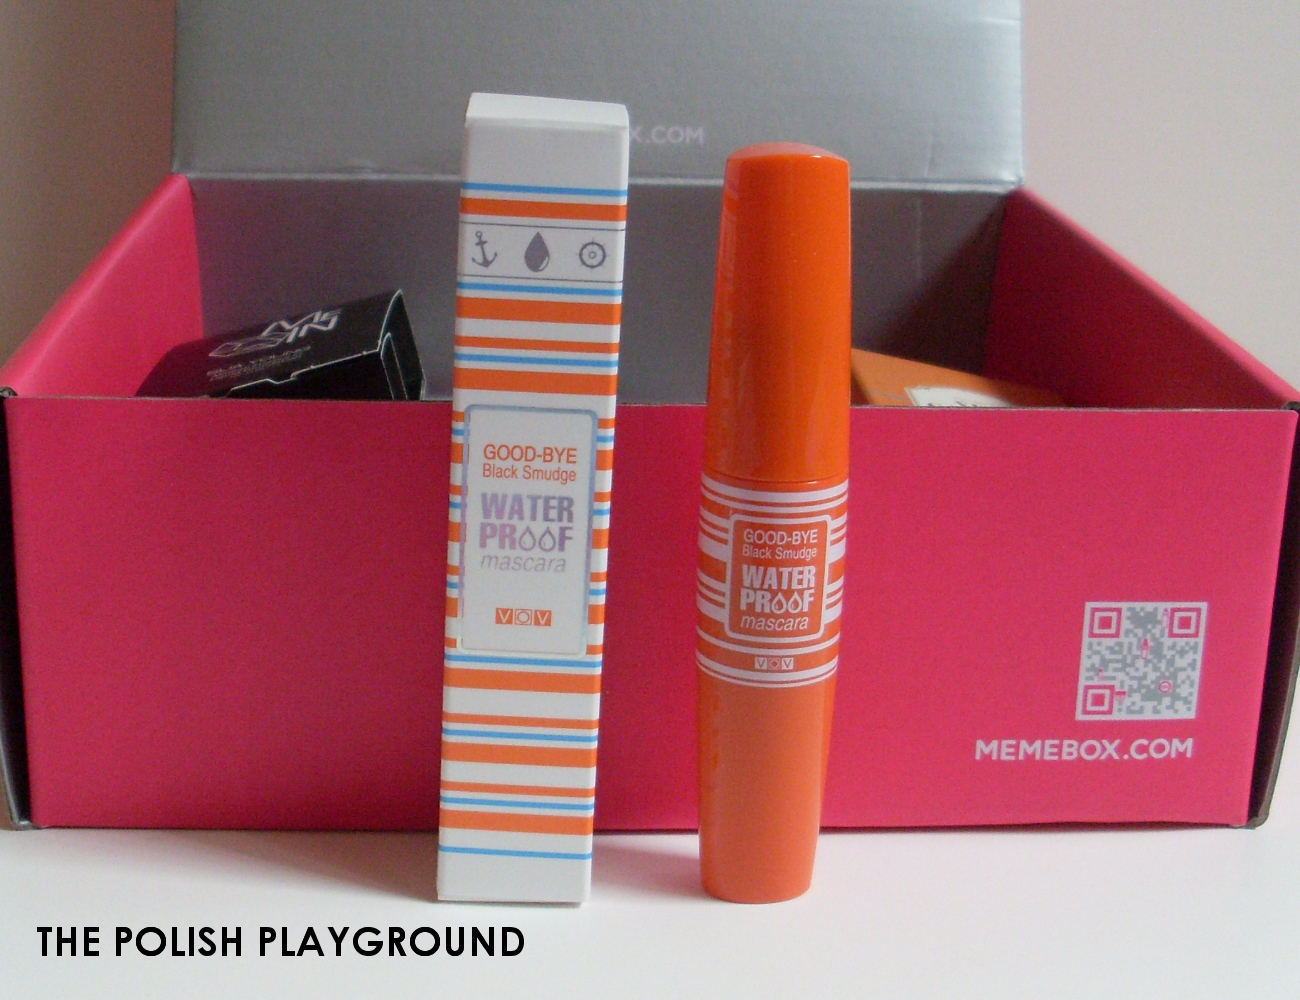 Memebox Global #14 Unboxing - VOV Good-Bye Black Smudge Waterproof Mascara in 02 Volume Proof